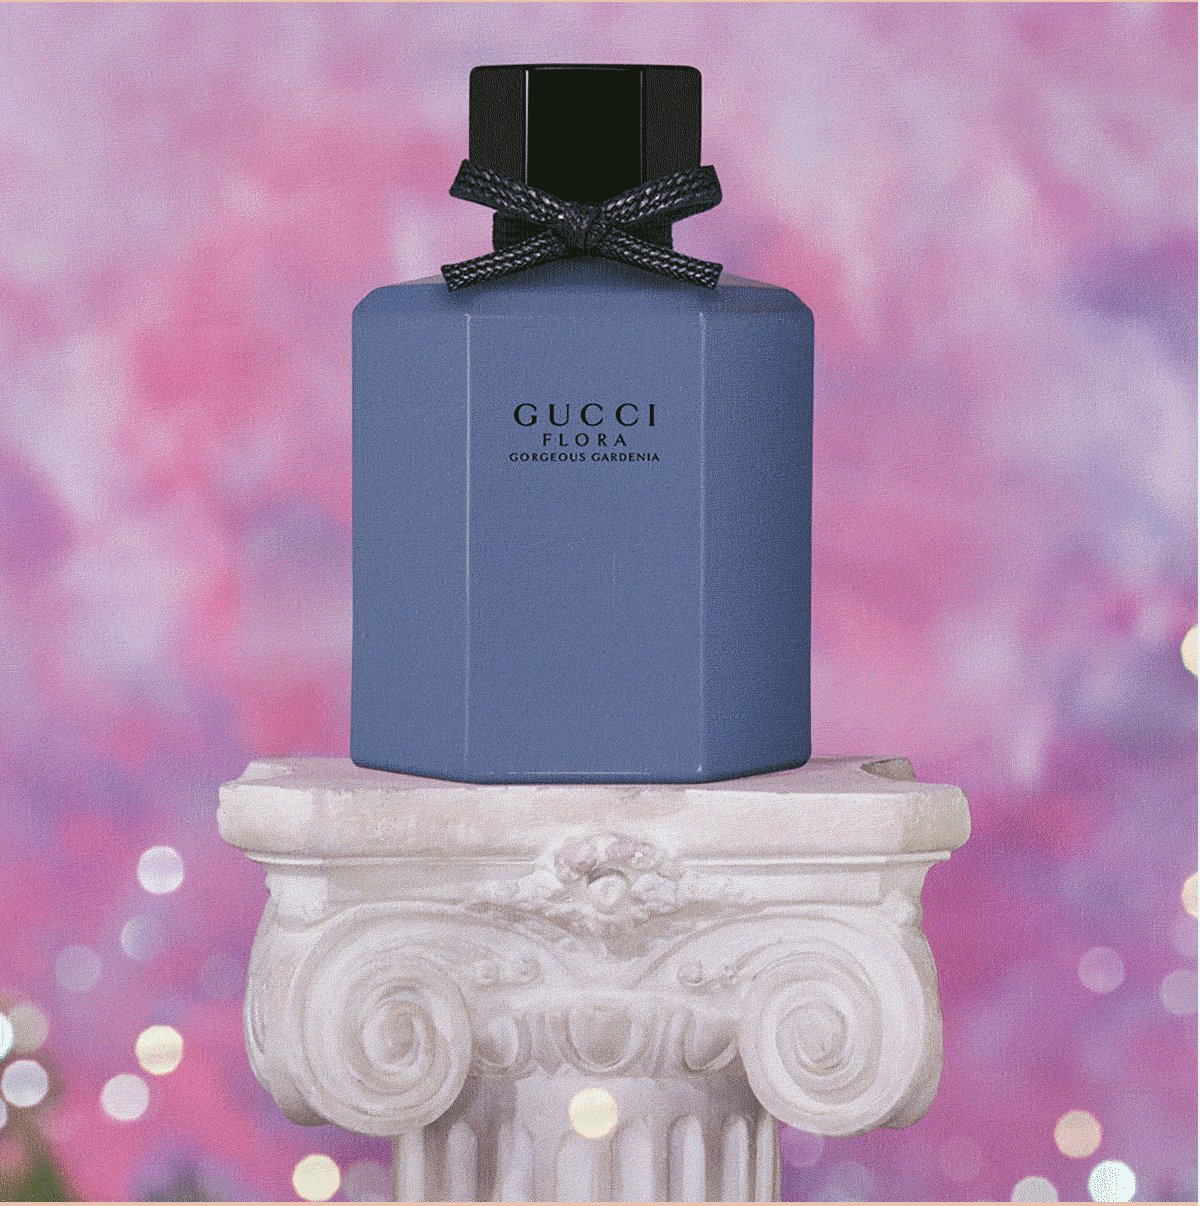 Gucci: Discover the Limited-Edition Gucci Flora Gorgeous Gardenia